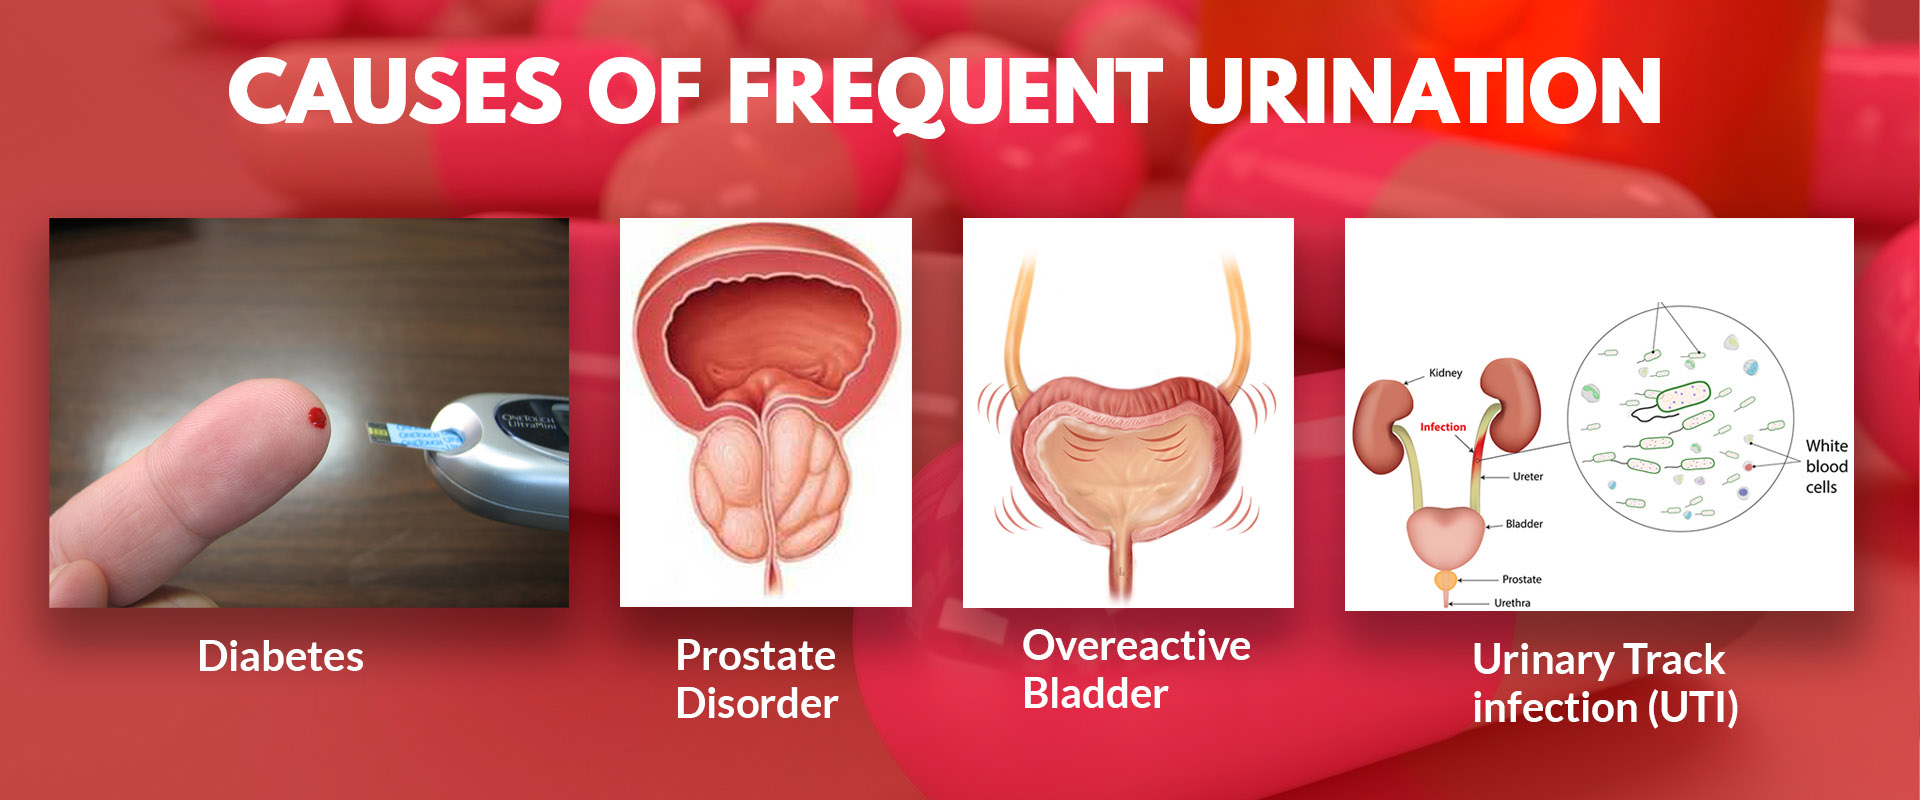 FREQUENT_URINATION